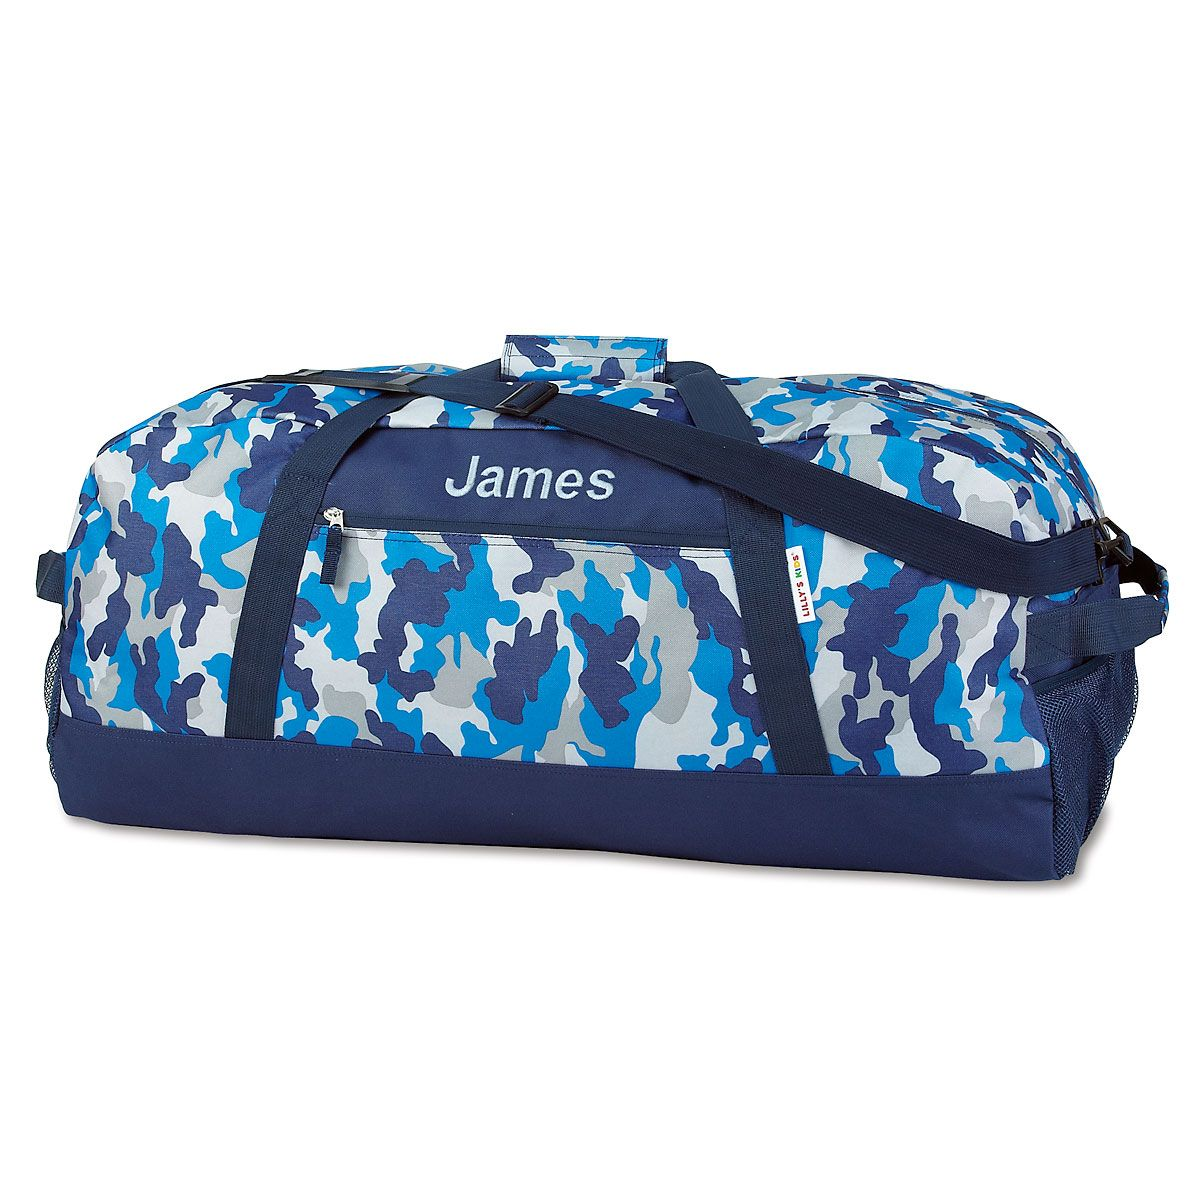 Blue Camo Personalized Duffel Bags